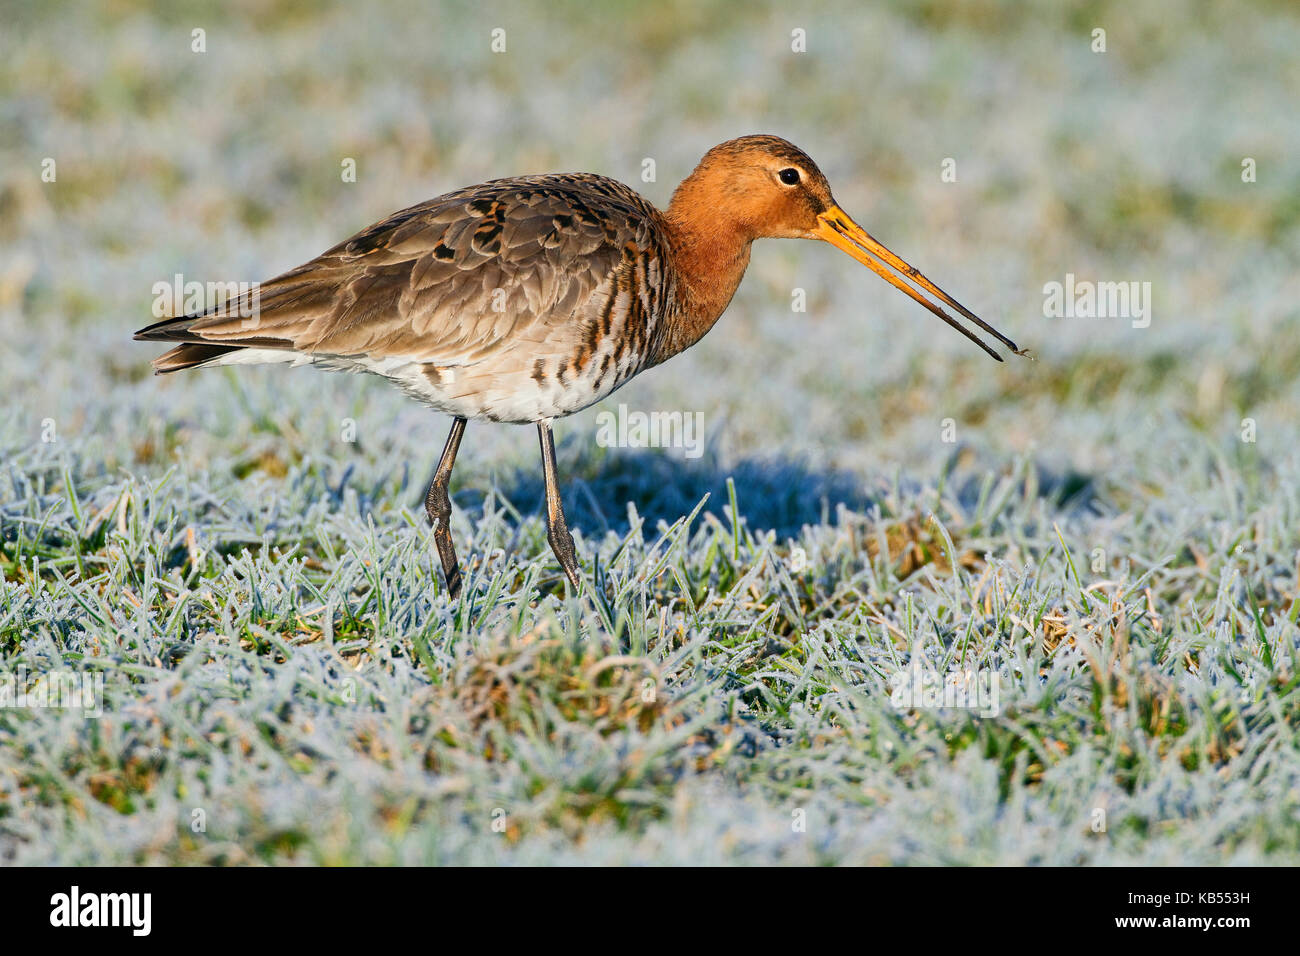 Black-tailed Godwit (Limosa limosa) foraging on frozen meadow, The Netherlands, Gelderland, Arkemheen - Stock Image